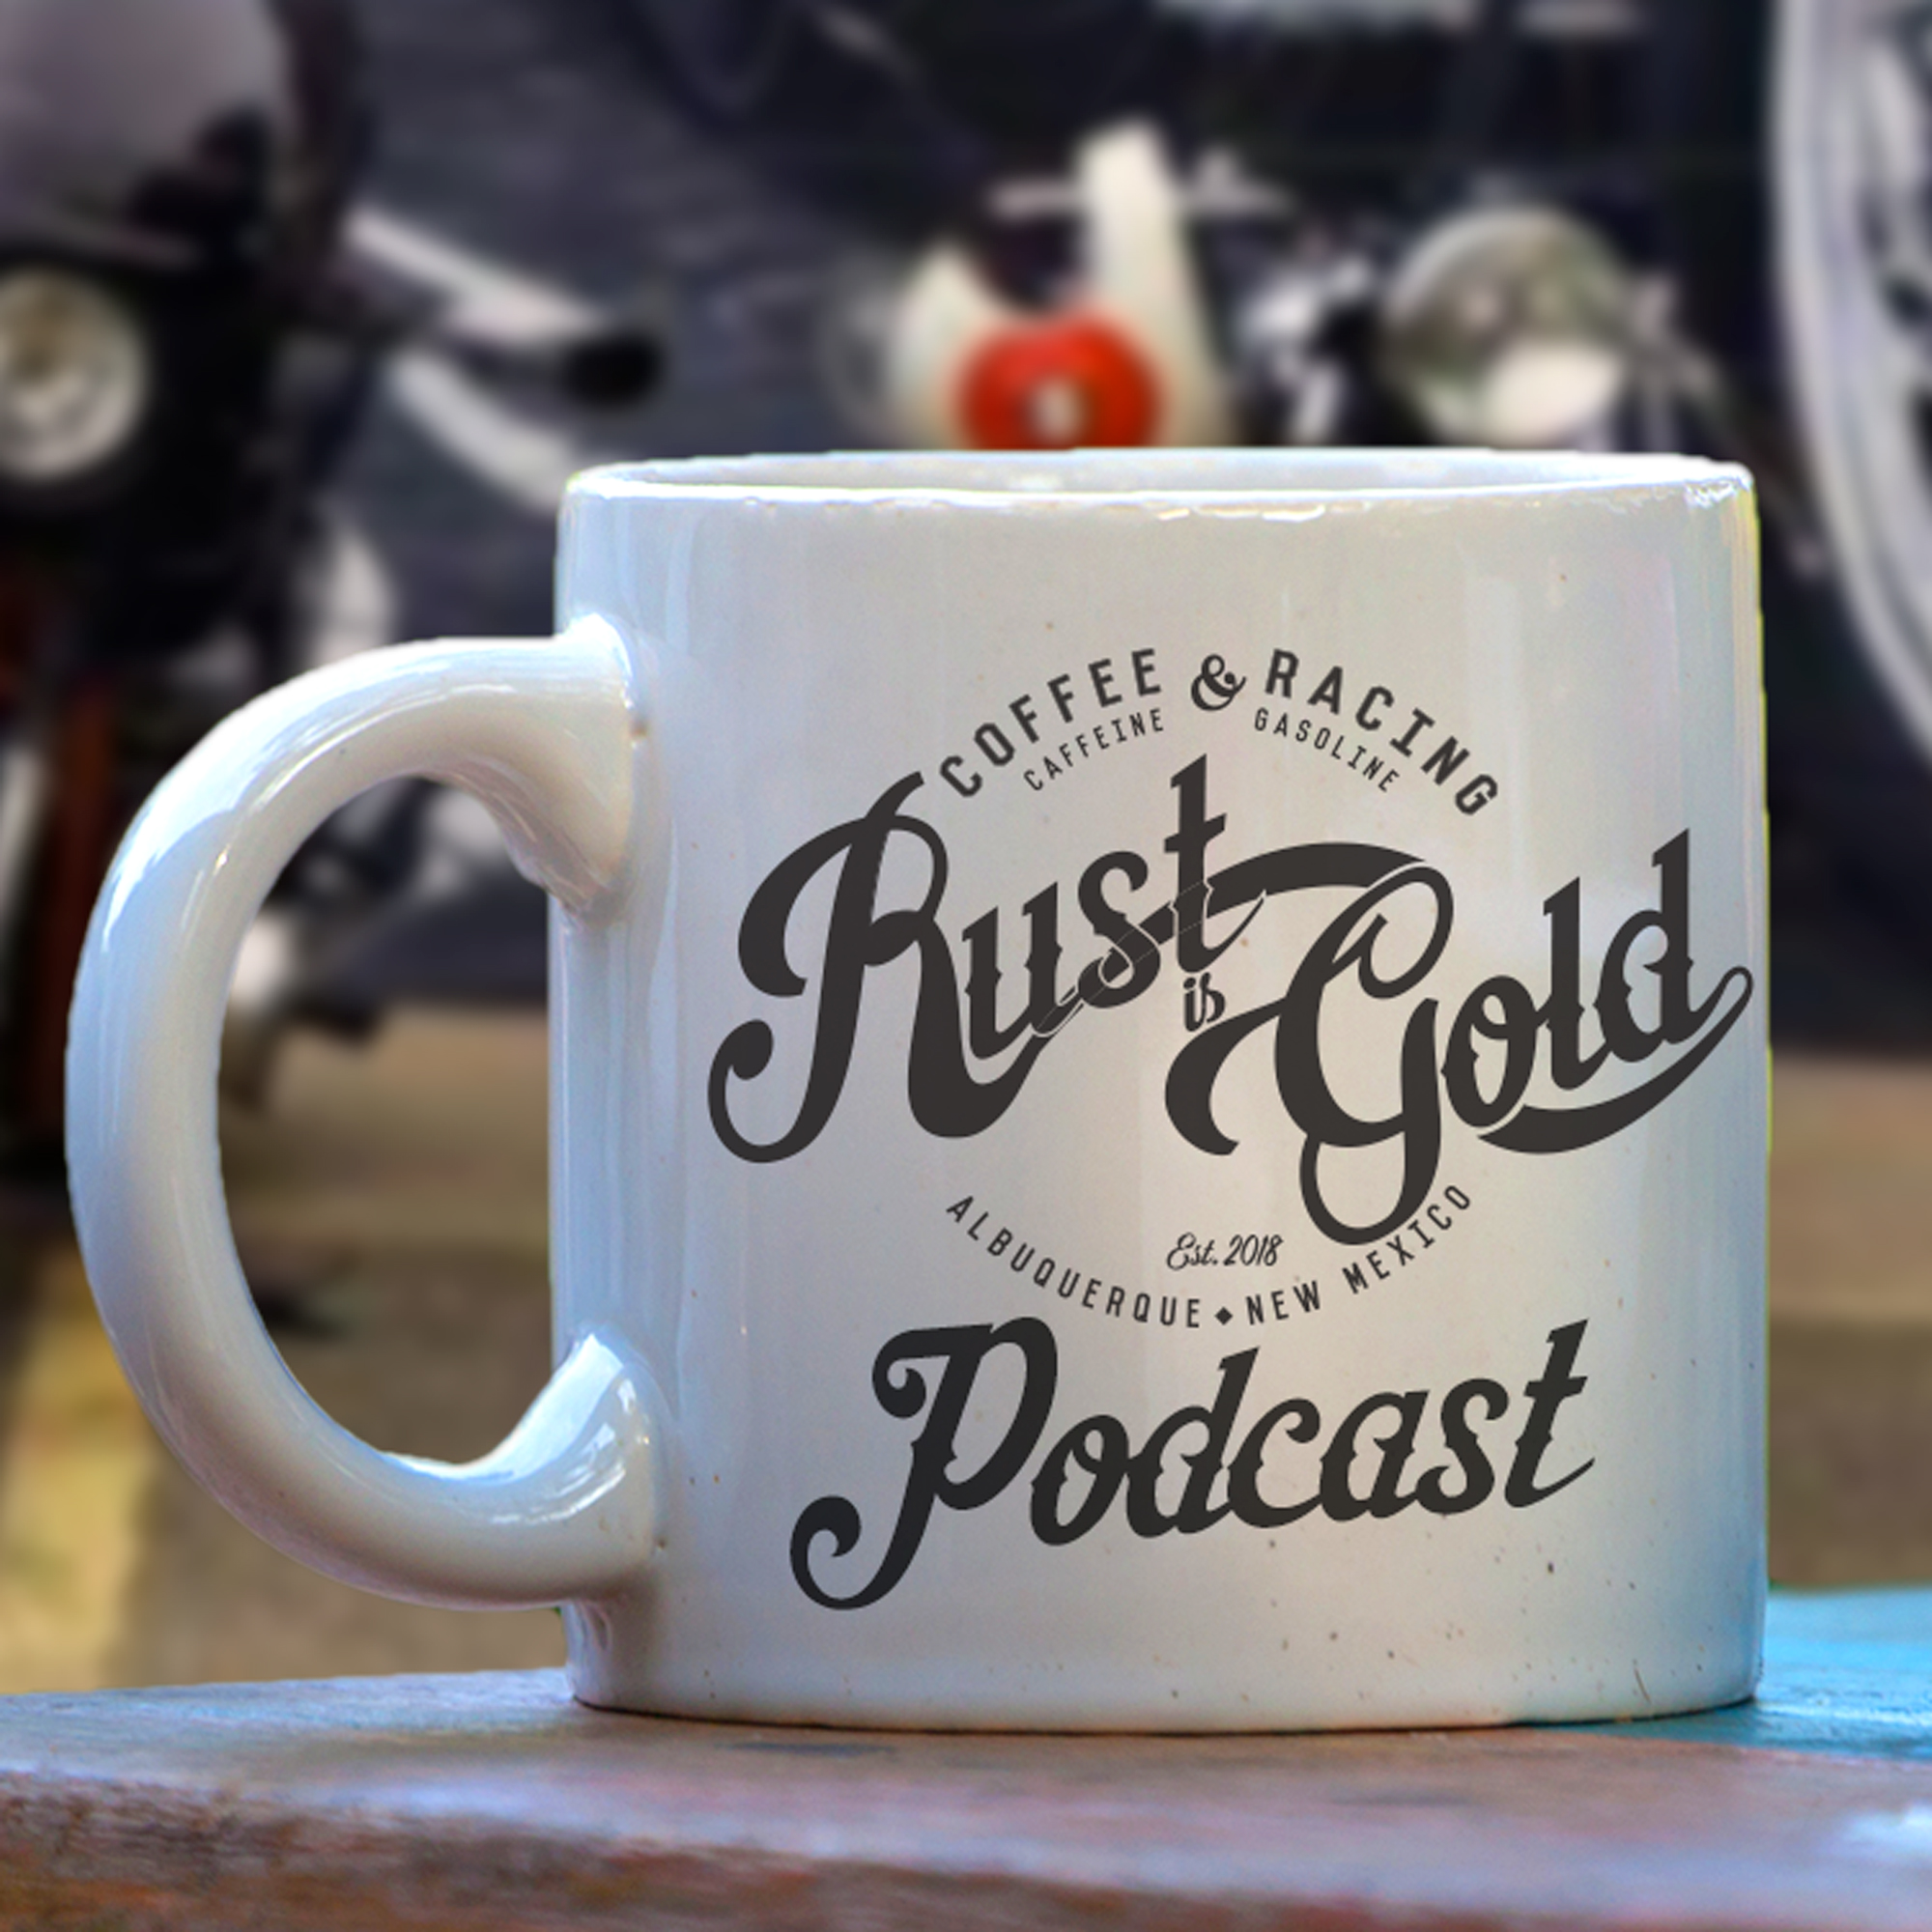 Rust is Gold Racing Podcast